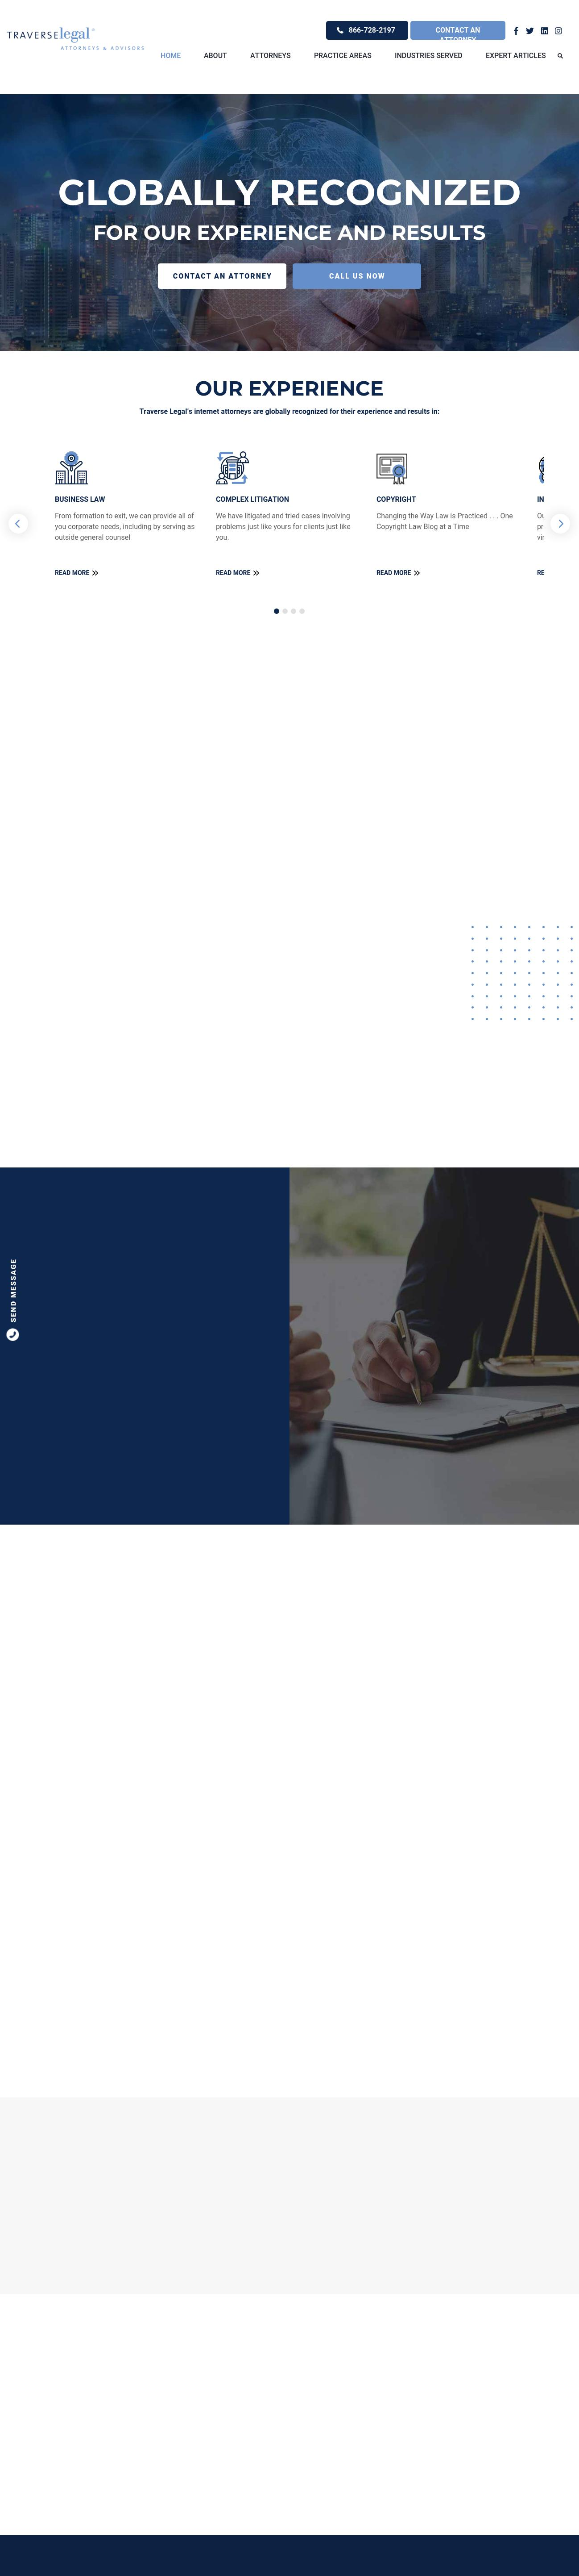 Traverse Legal, PLC - Encino CA Lawyers